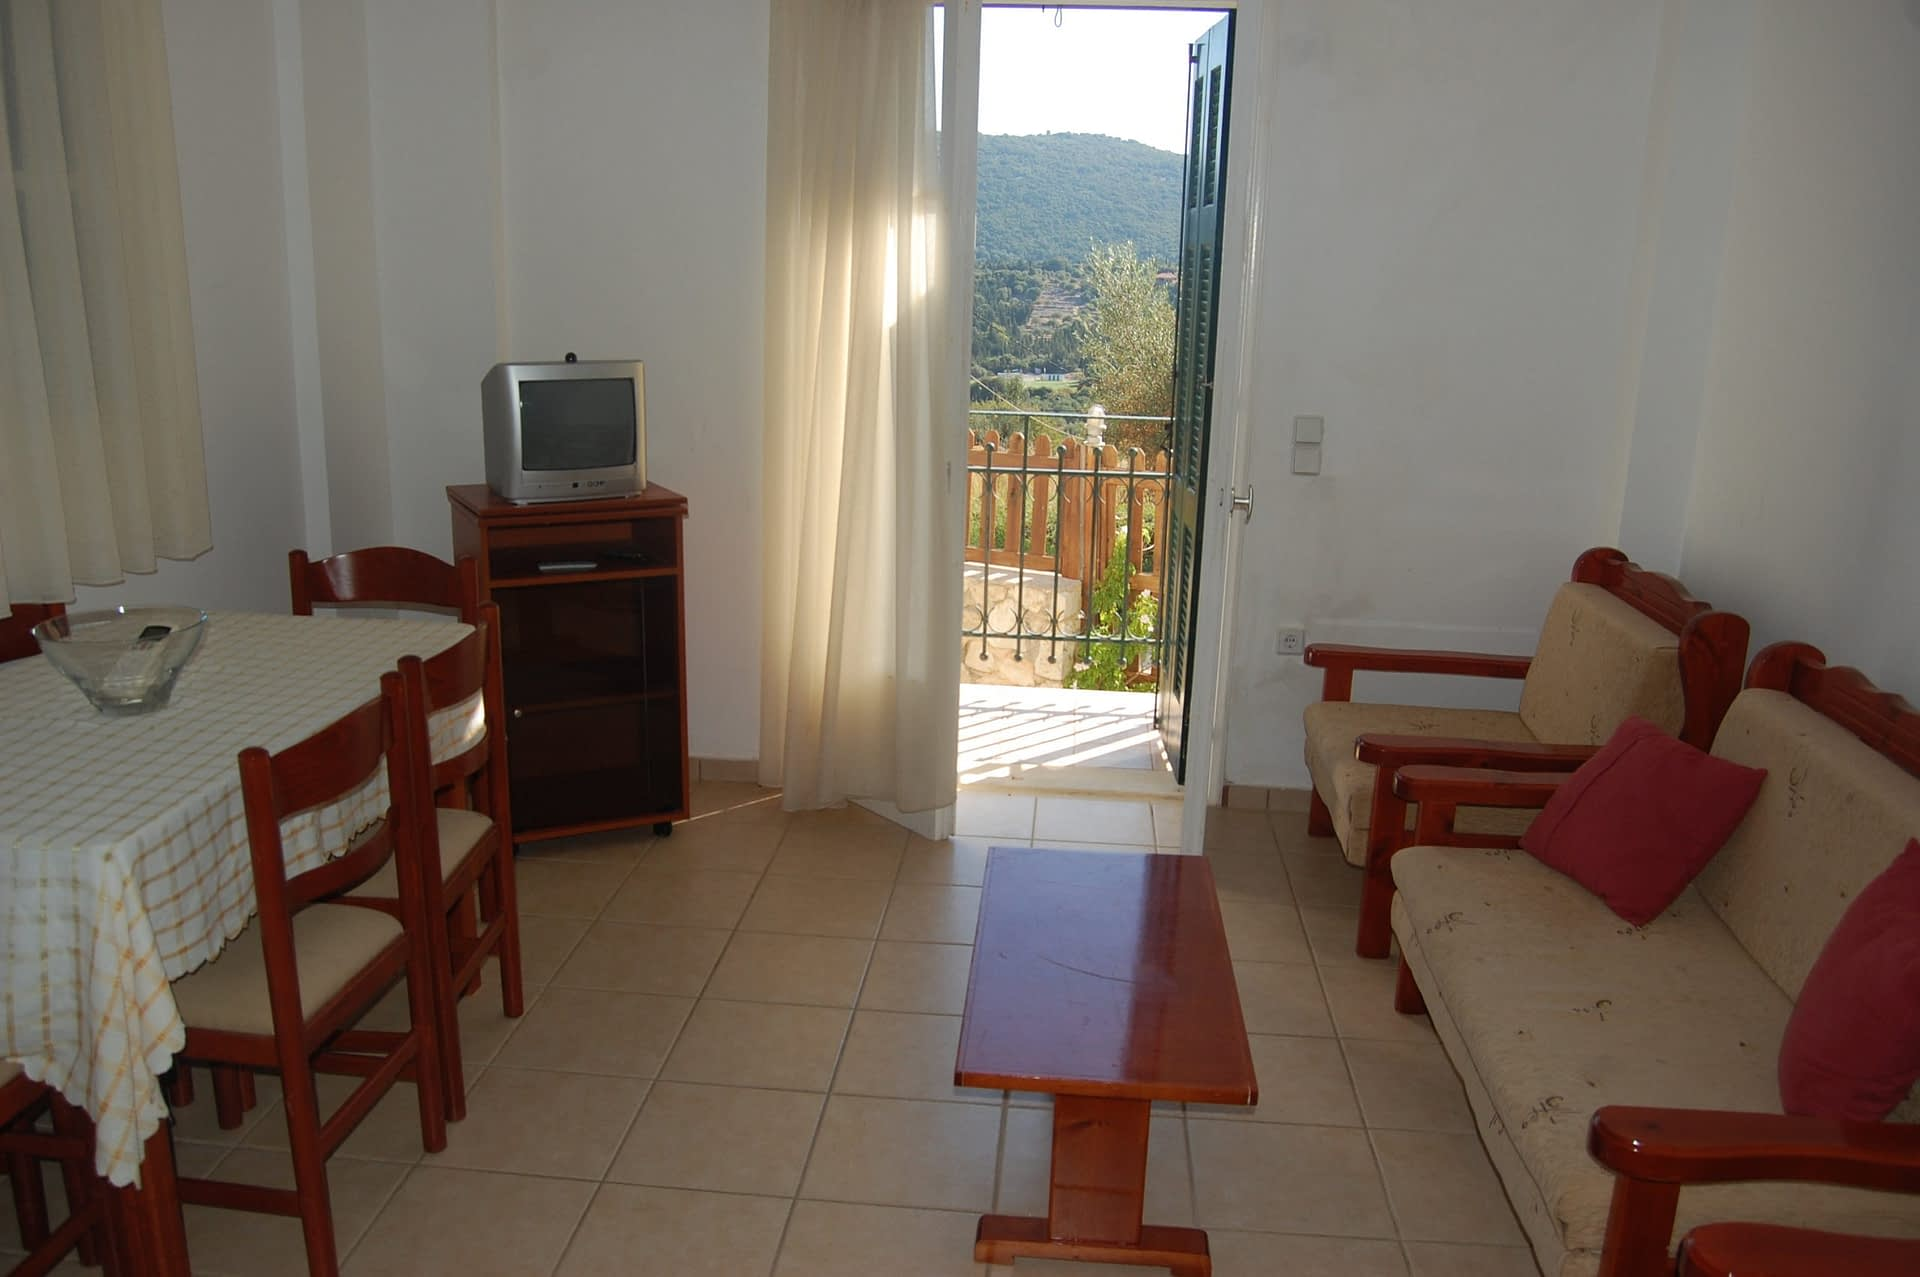 Apartment complex for sale in Ithaca Greece with interior view